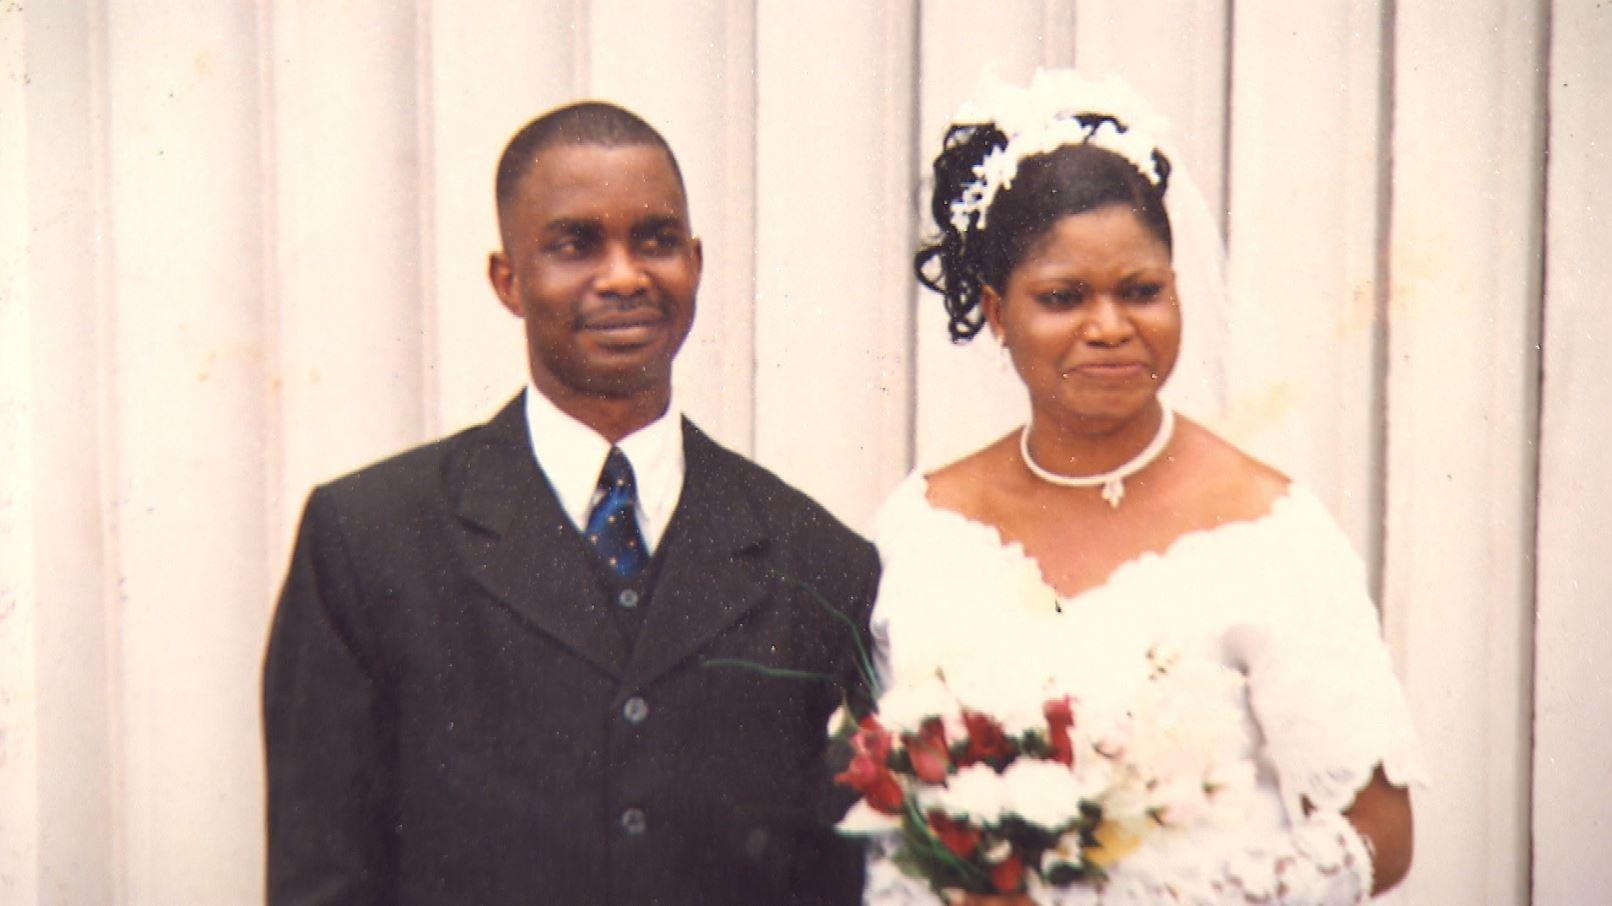 Agnes and her husband, Modupe Segun-George, had a comfortable life in Nigeria. (Modupe Idowu Agnes)